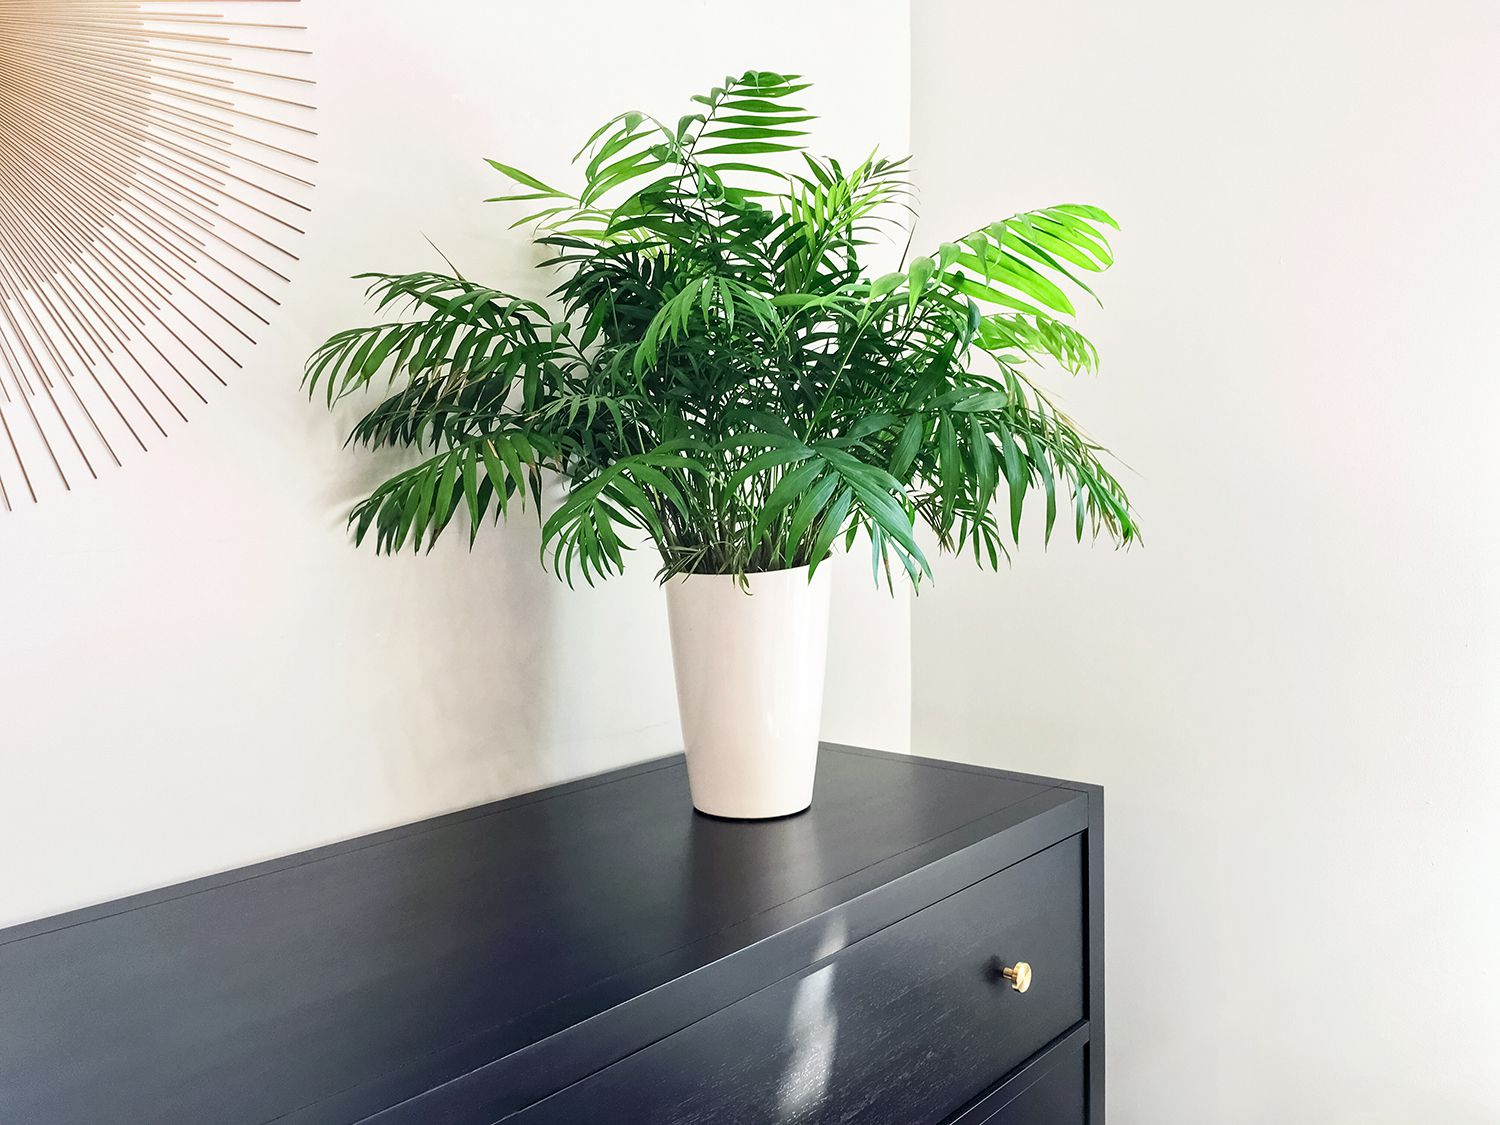 Parlor Palm Plant Care And Growing Guide